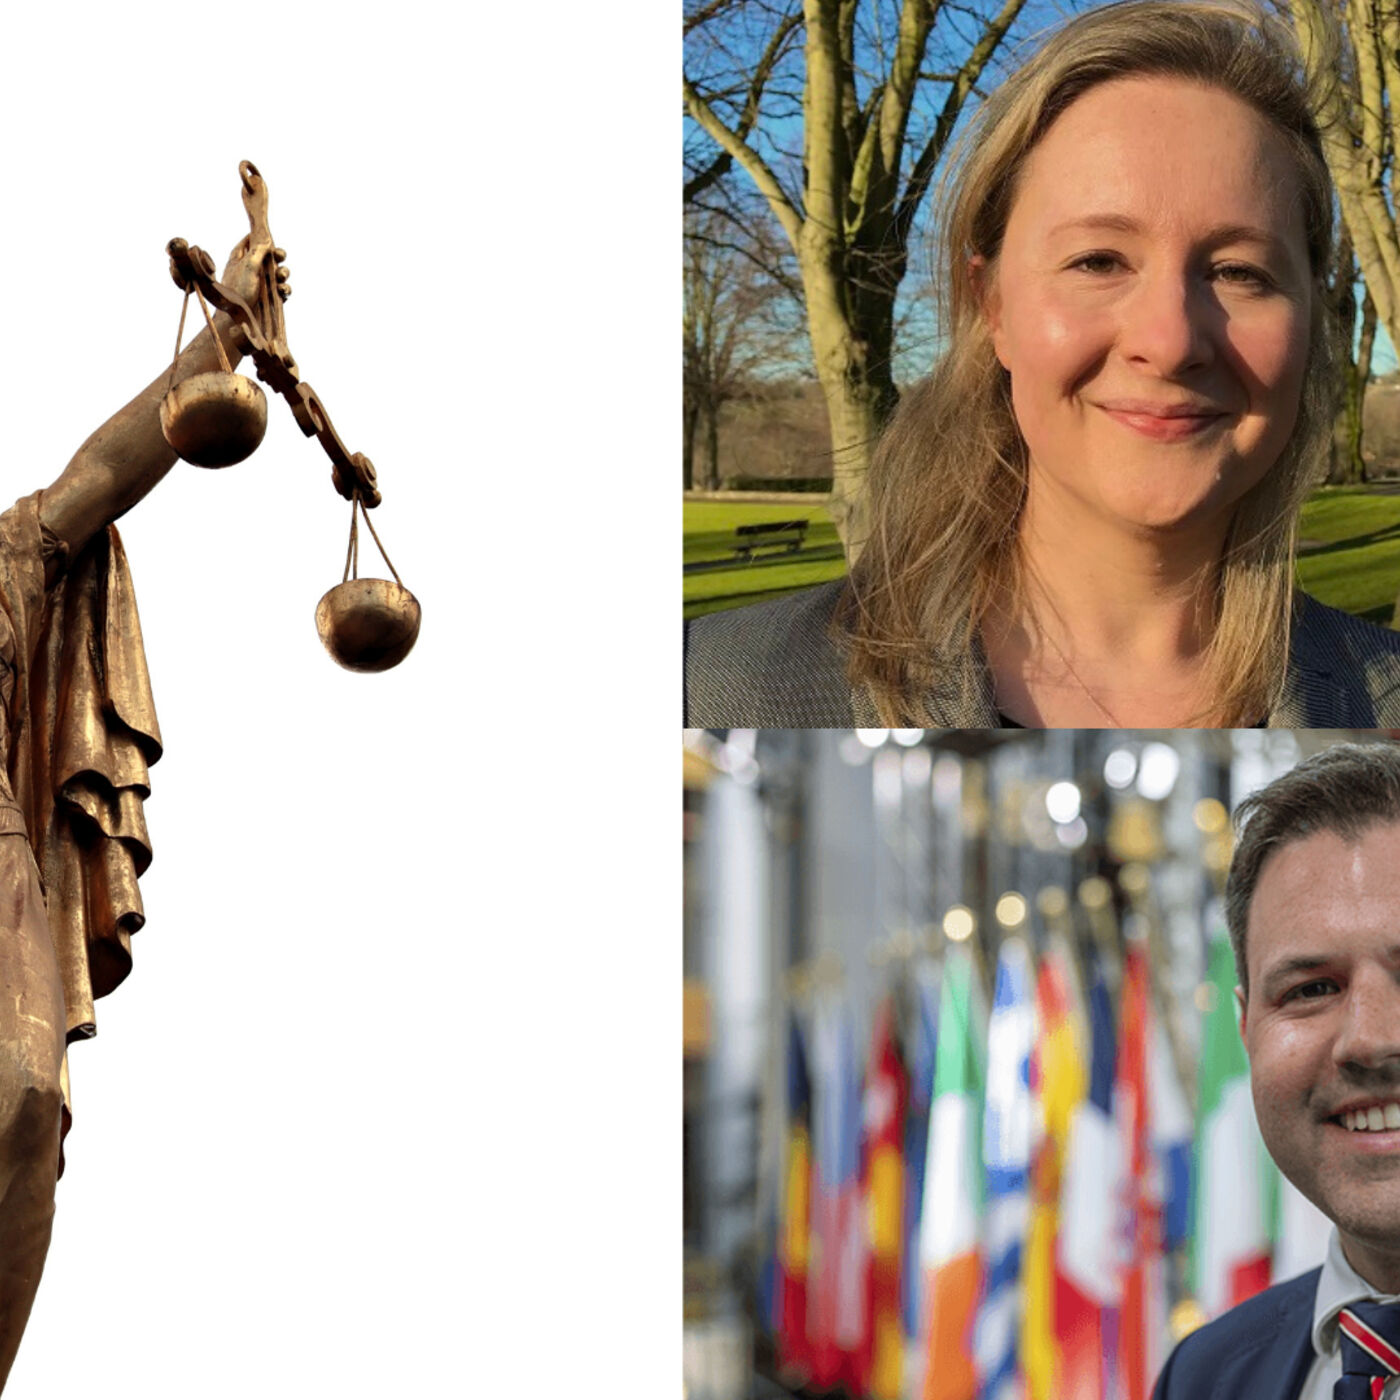 Enemies of the People - Politics & the Law with Antony Hook and Judith Rogerson